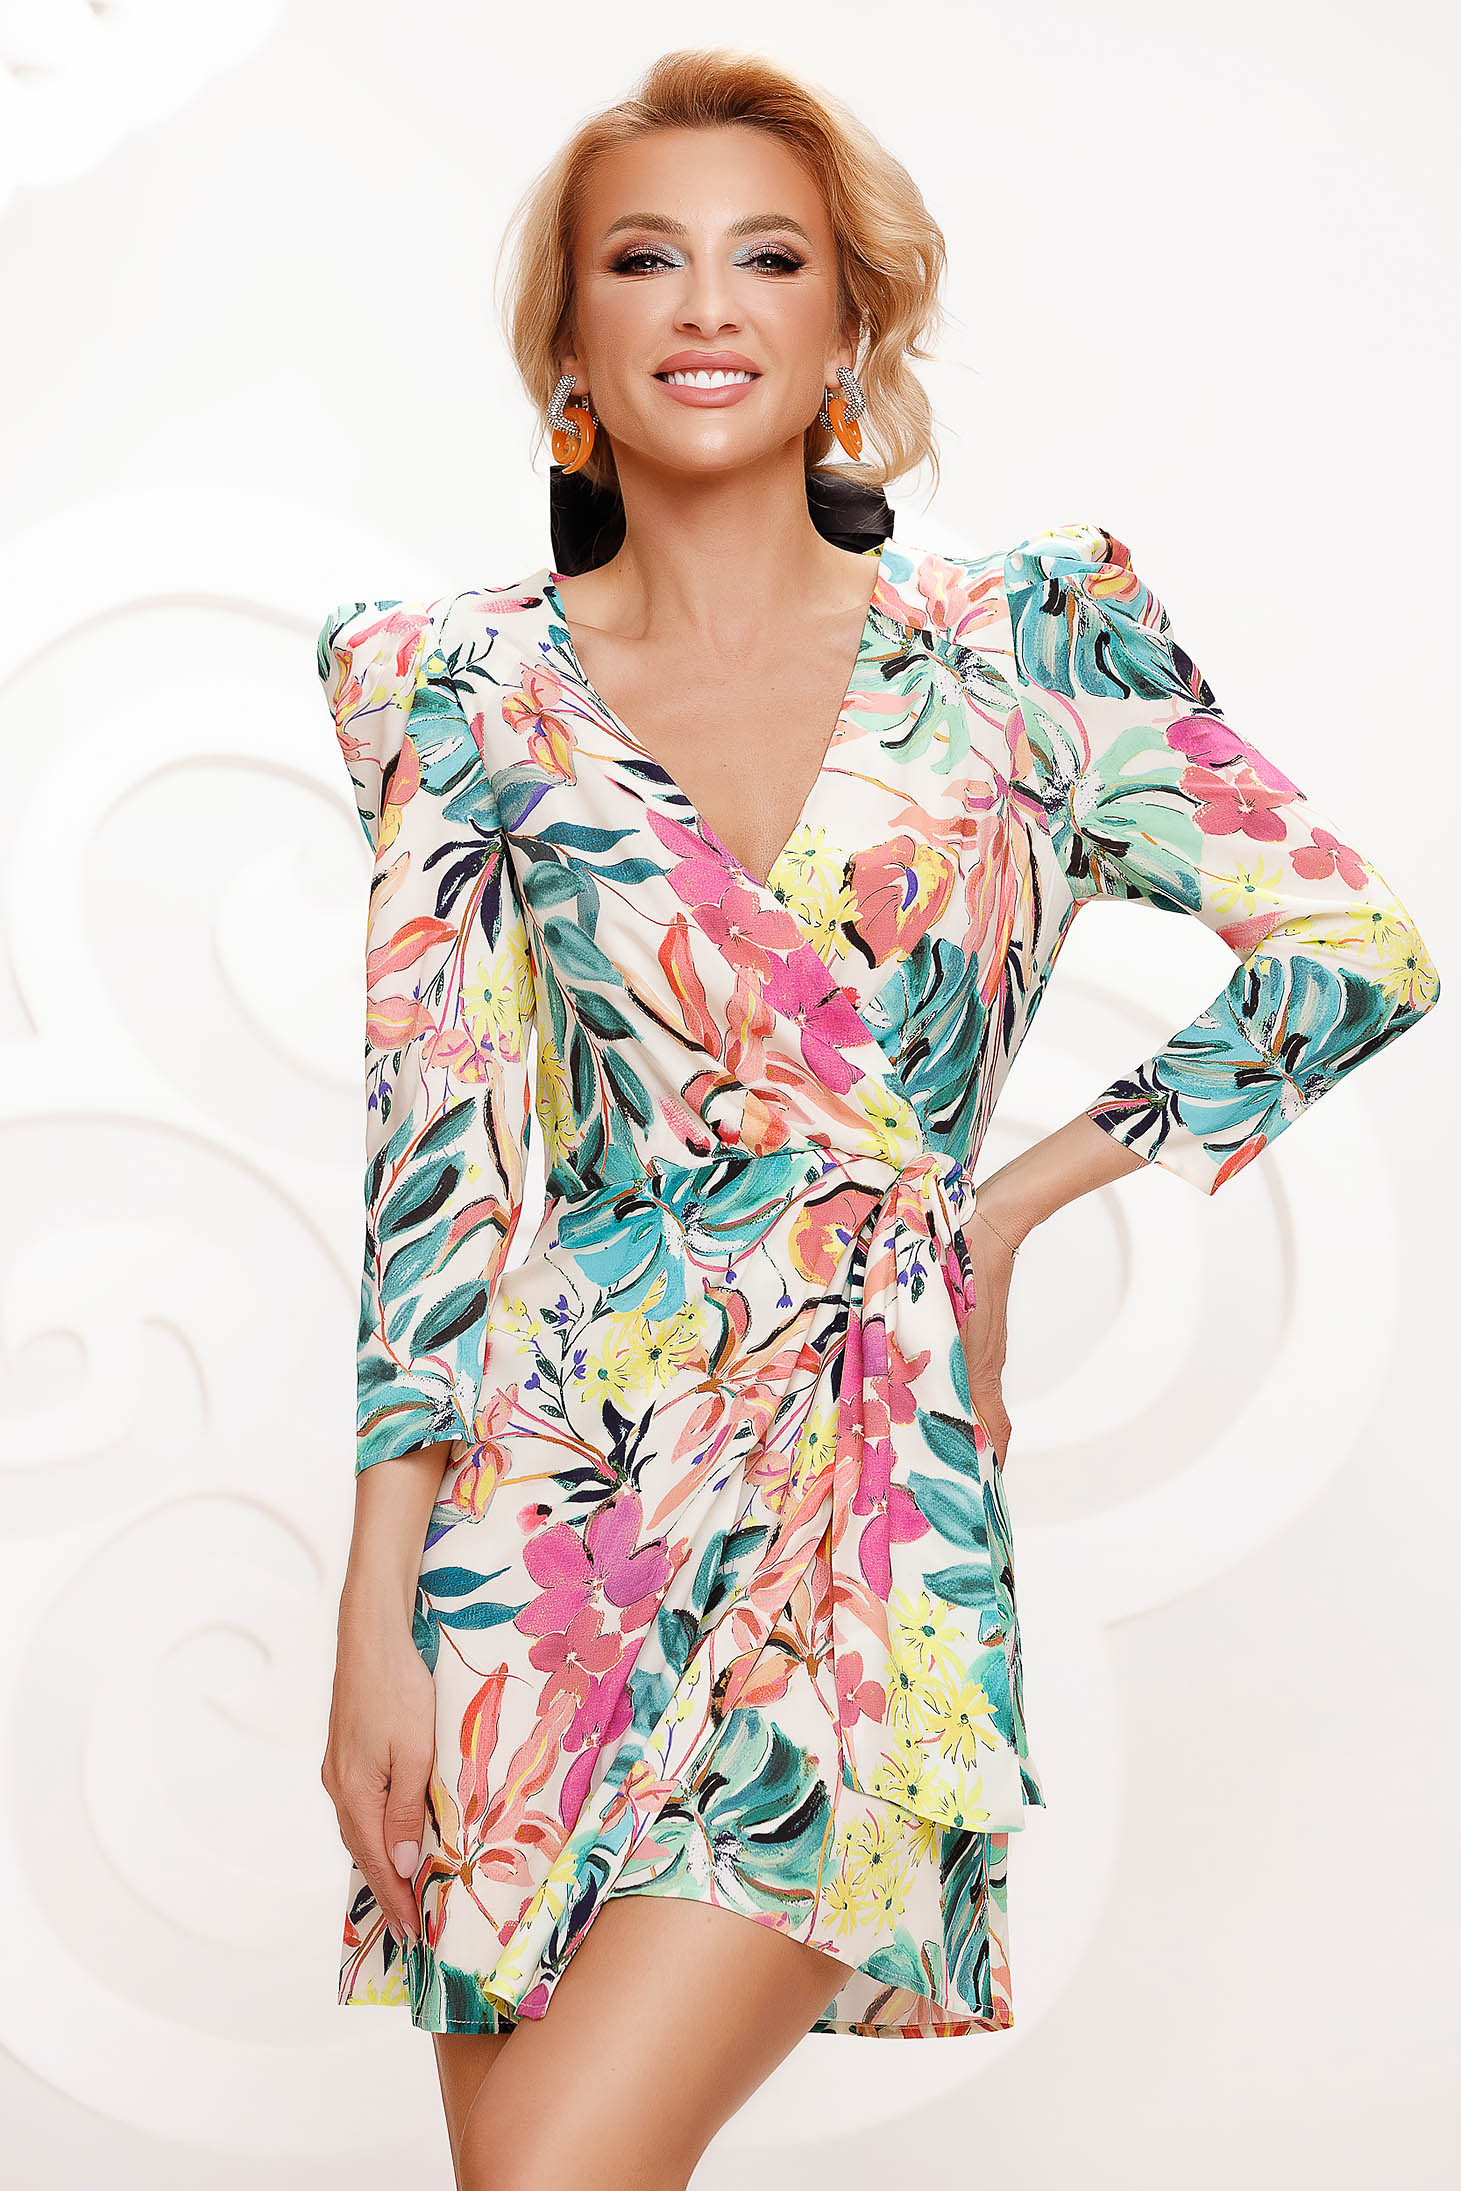 Dress cloche short cut long sleeved high shoulders with floral print